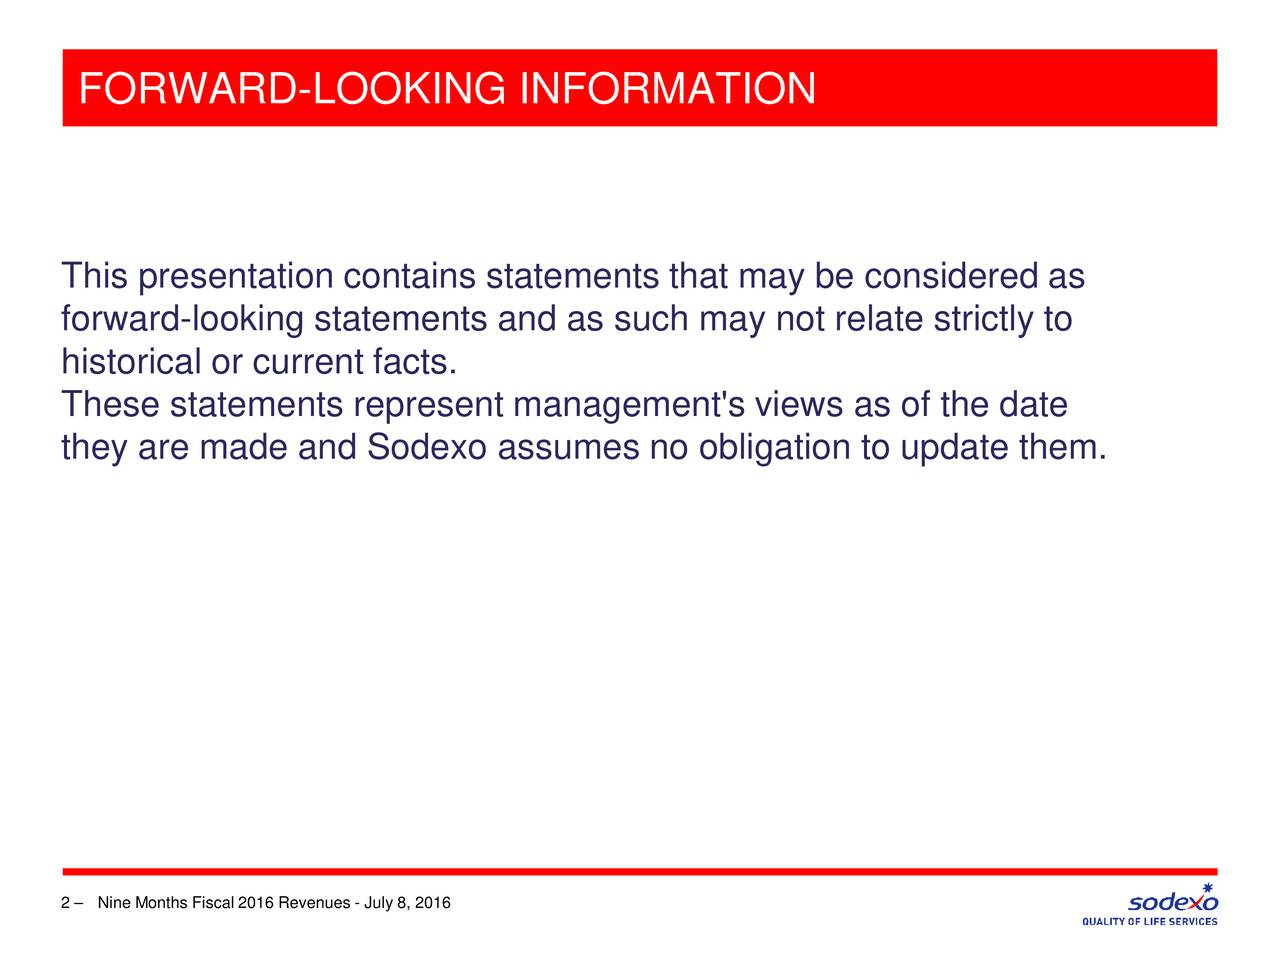 This presentation contains statements that may be considered as forward-looking statements and as such may not relate strictly to historical or current facts. These statements represent management's views as of the date they are made and Sodexo assumes no obligation to update them. 2  Nine Months Fiscal 2016 Revenues - July 8, 2016